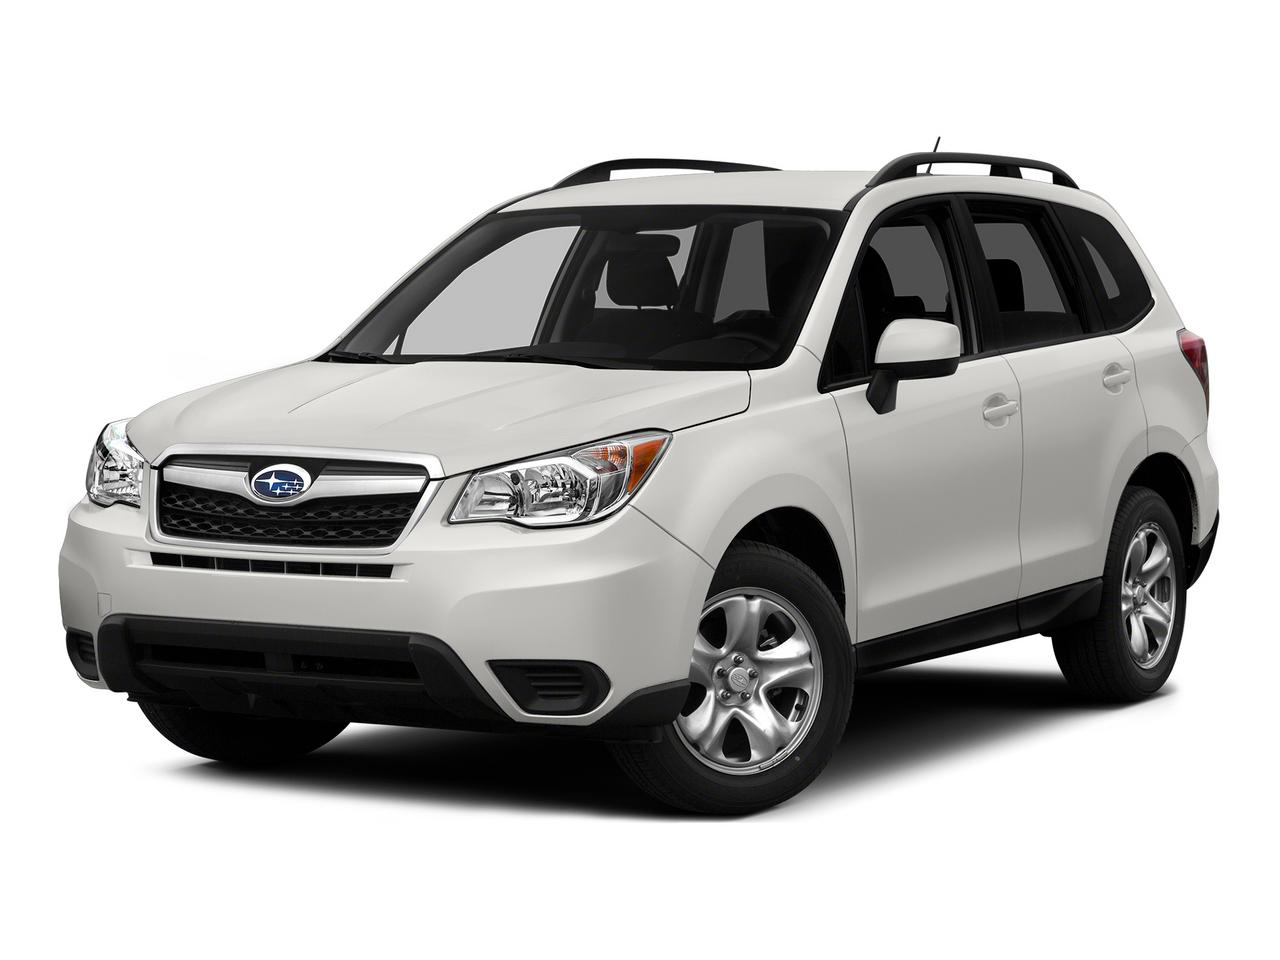 2015 Subaru Forester Vehicle Photo in Manassas, VA 20109